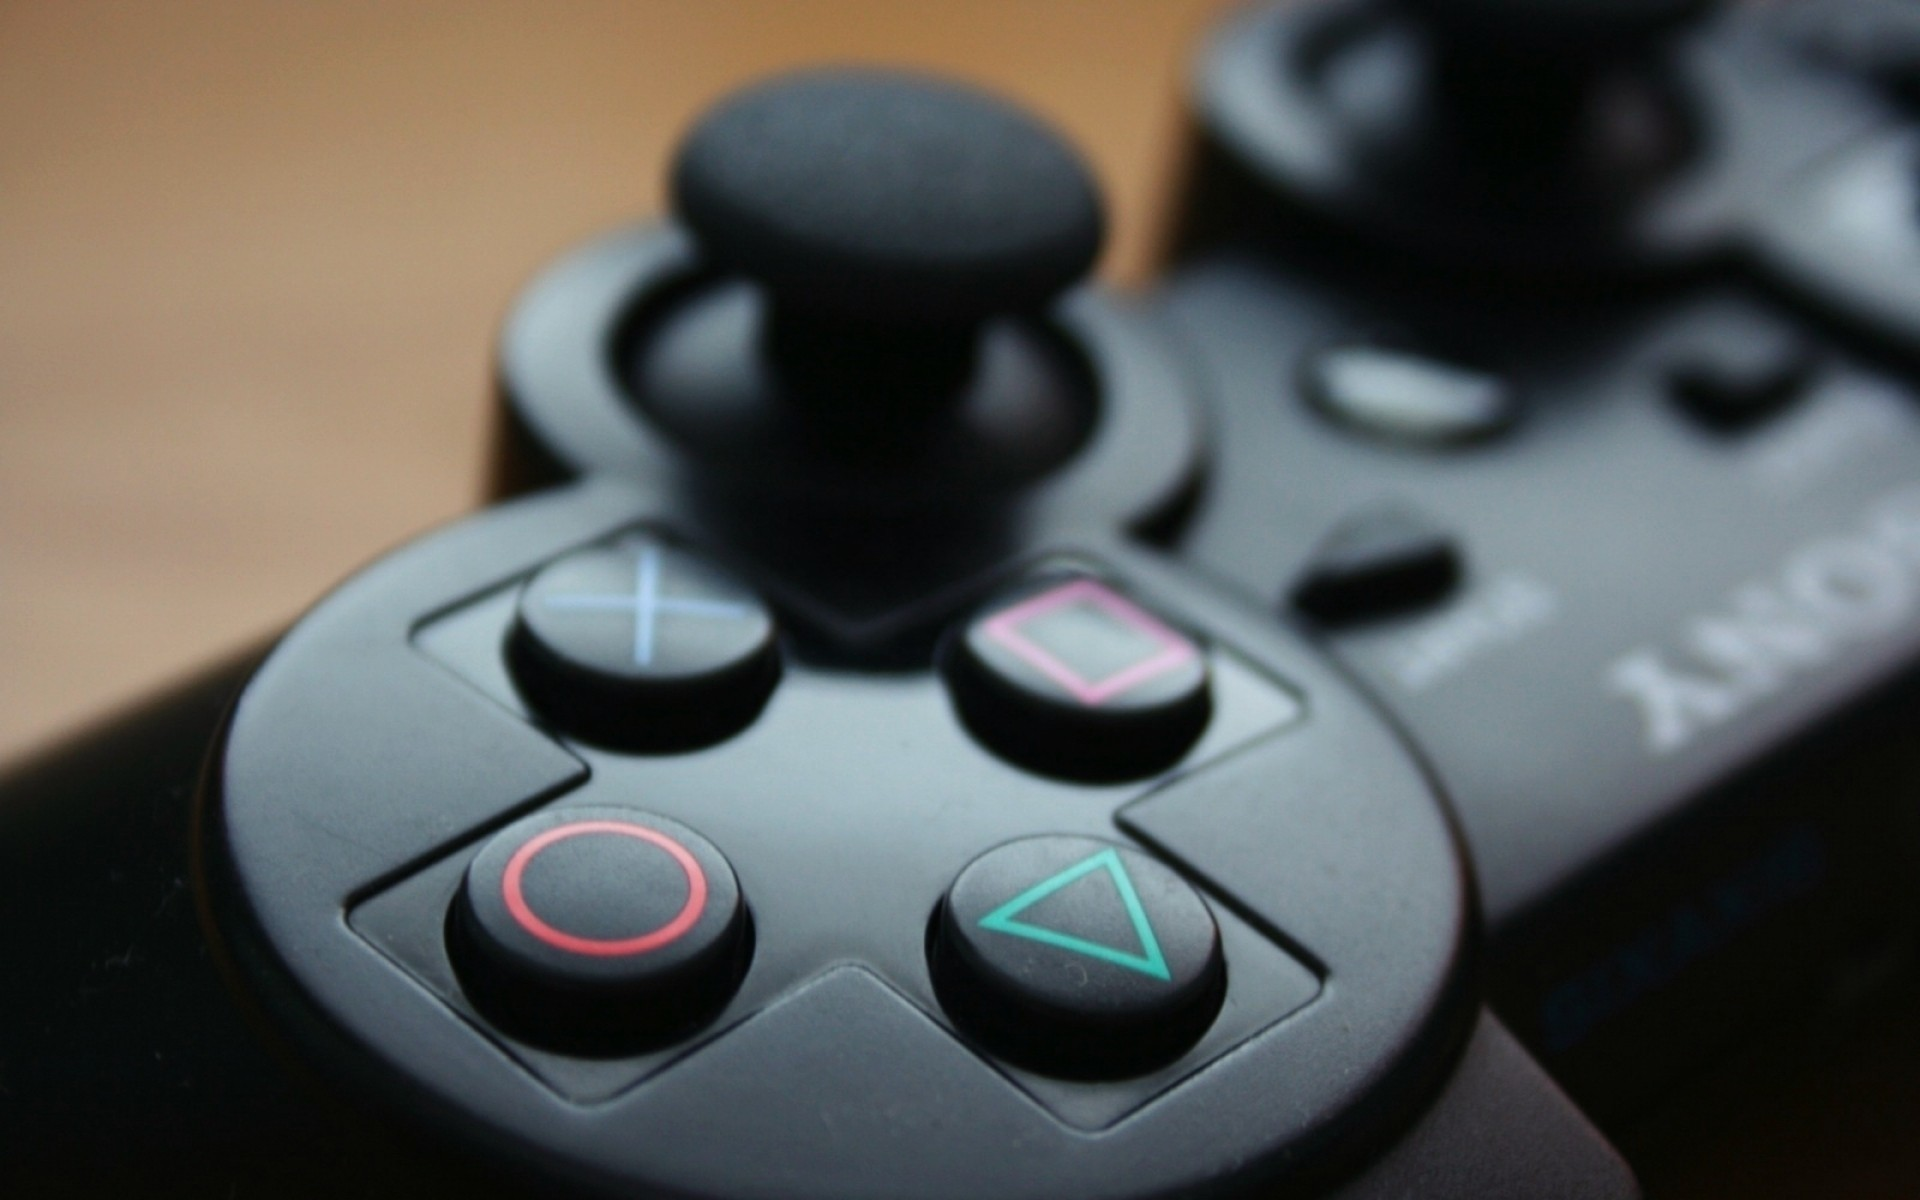 Is Sony gearing up to launch the next-generation PlayStation 4 console?